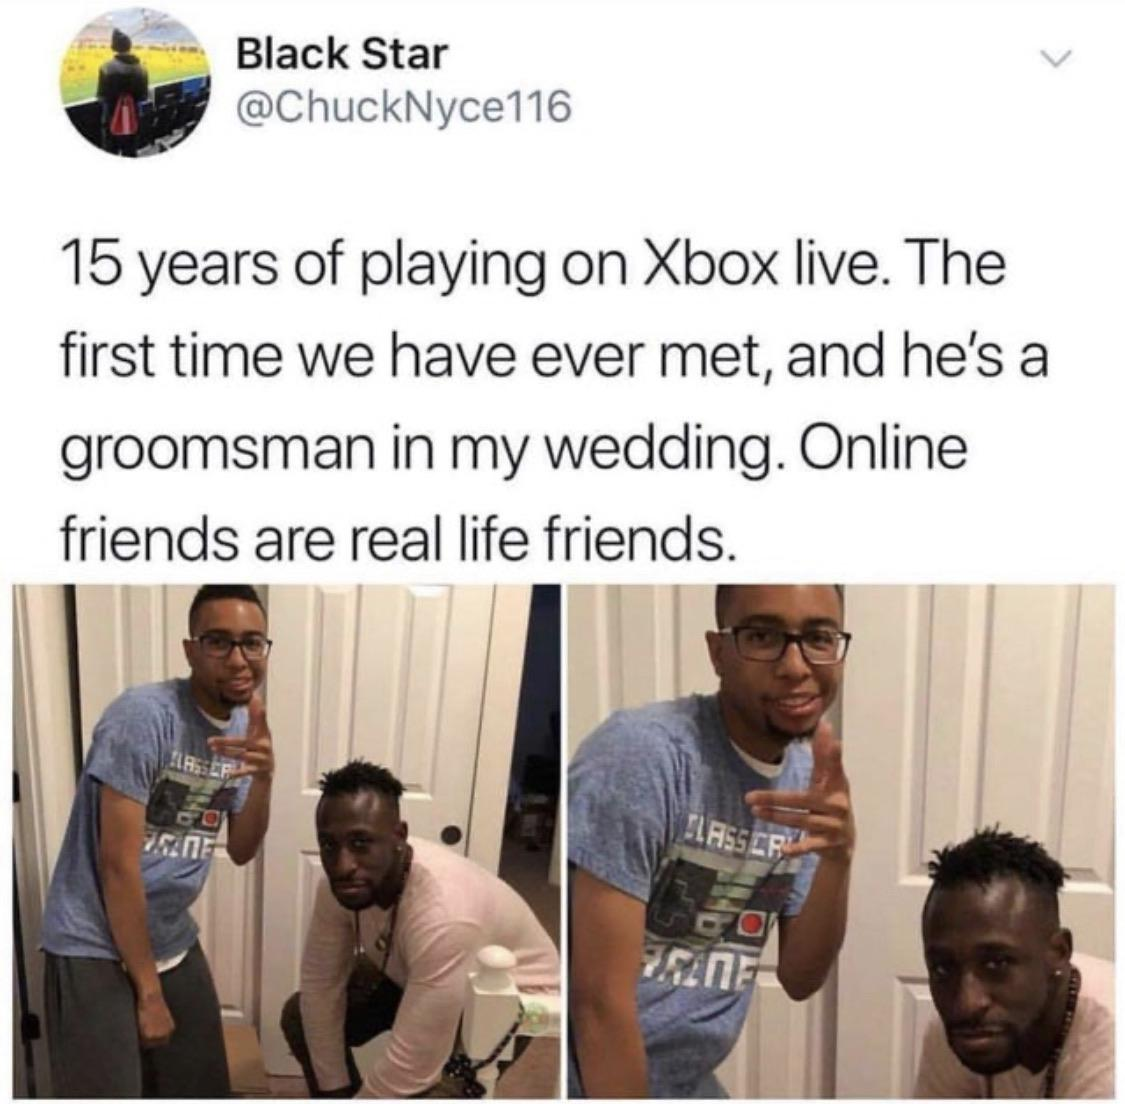 [Image] Online friends are real life friends